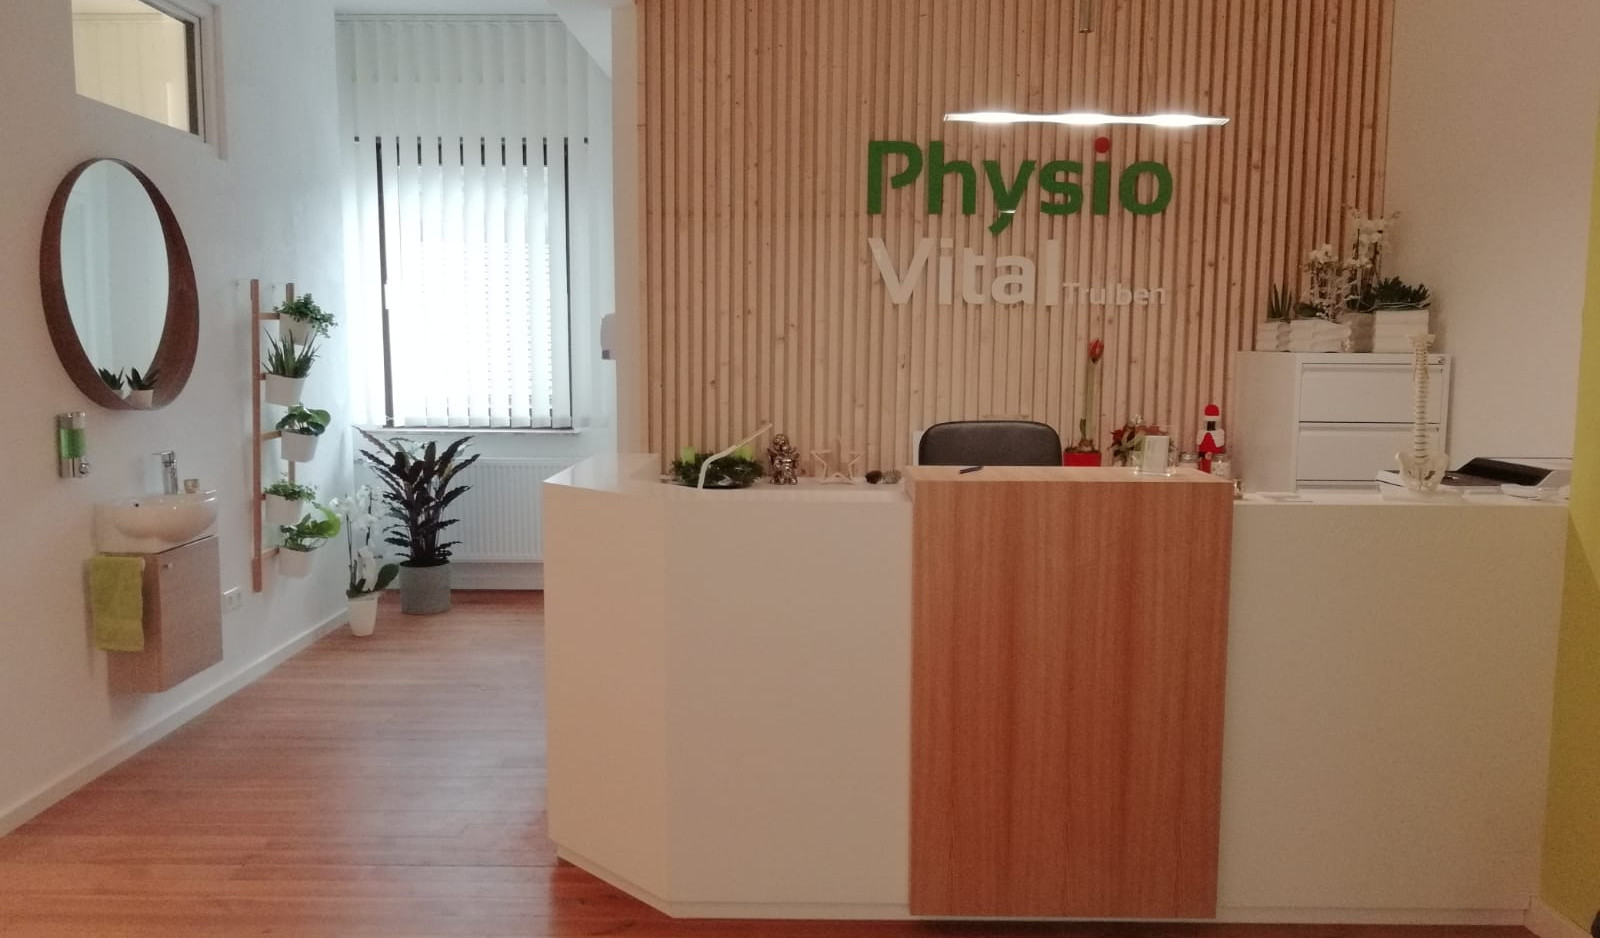 PhysioVital, Trulben